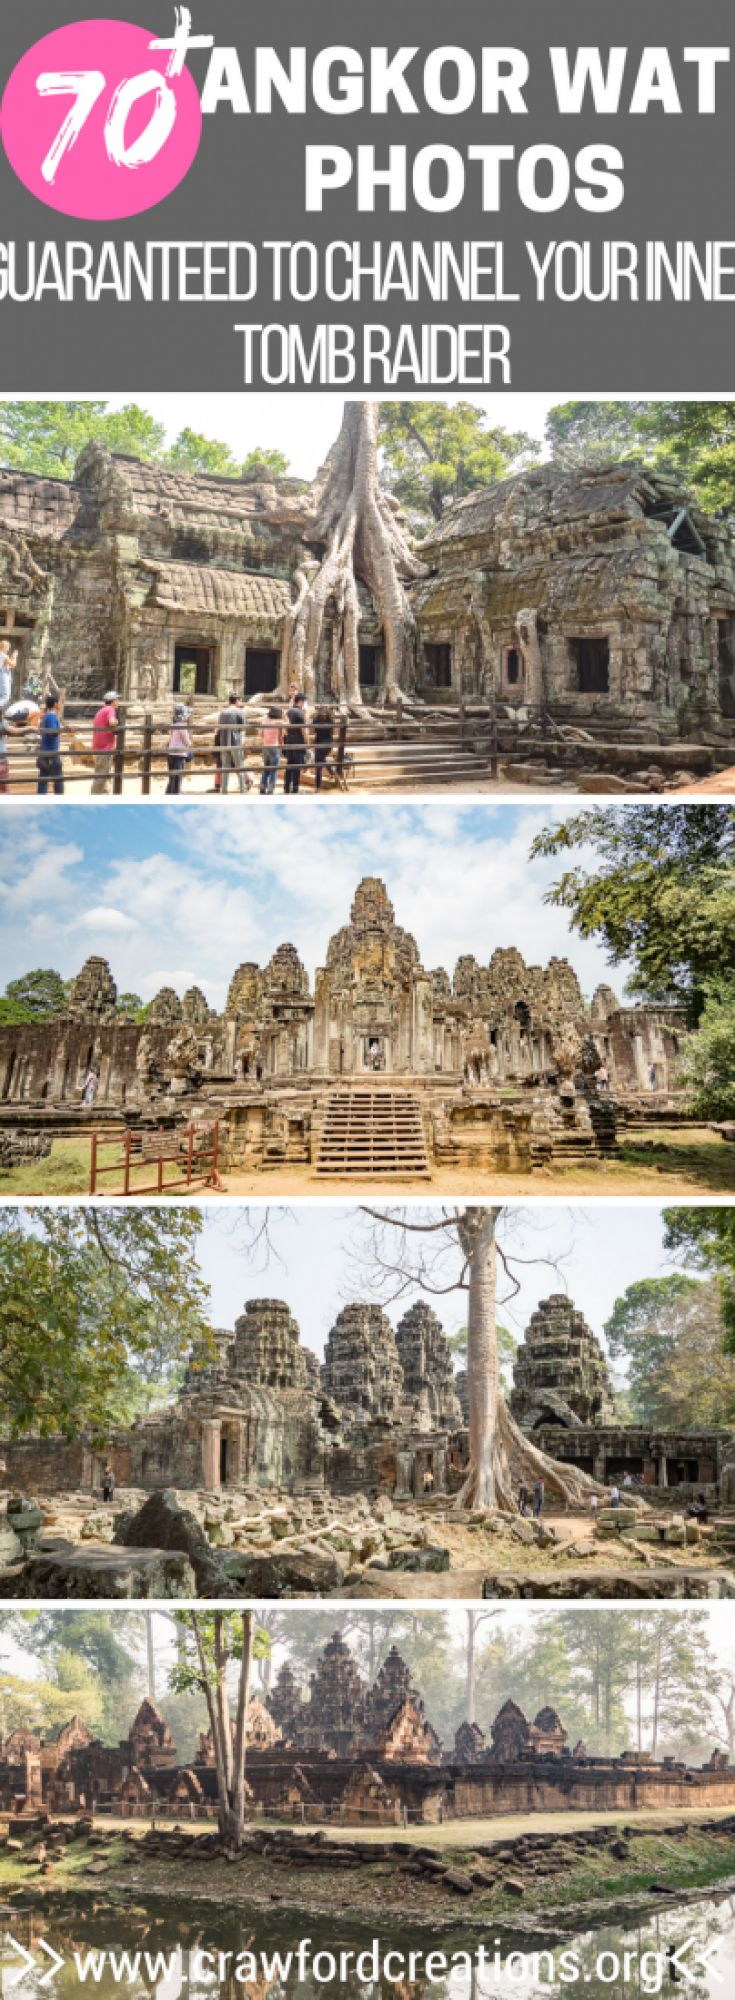 sex tourism in southeast asian countries essay The number of tourists in cambodia has doubled over the past four years in  2014, more than 4 million foreigners visited the southeast asian country,  attracted by  when this essay was finalised in early march, ongoing trials.